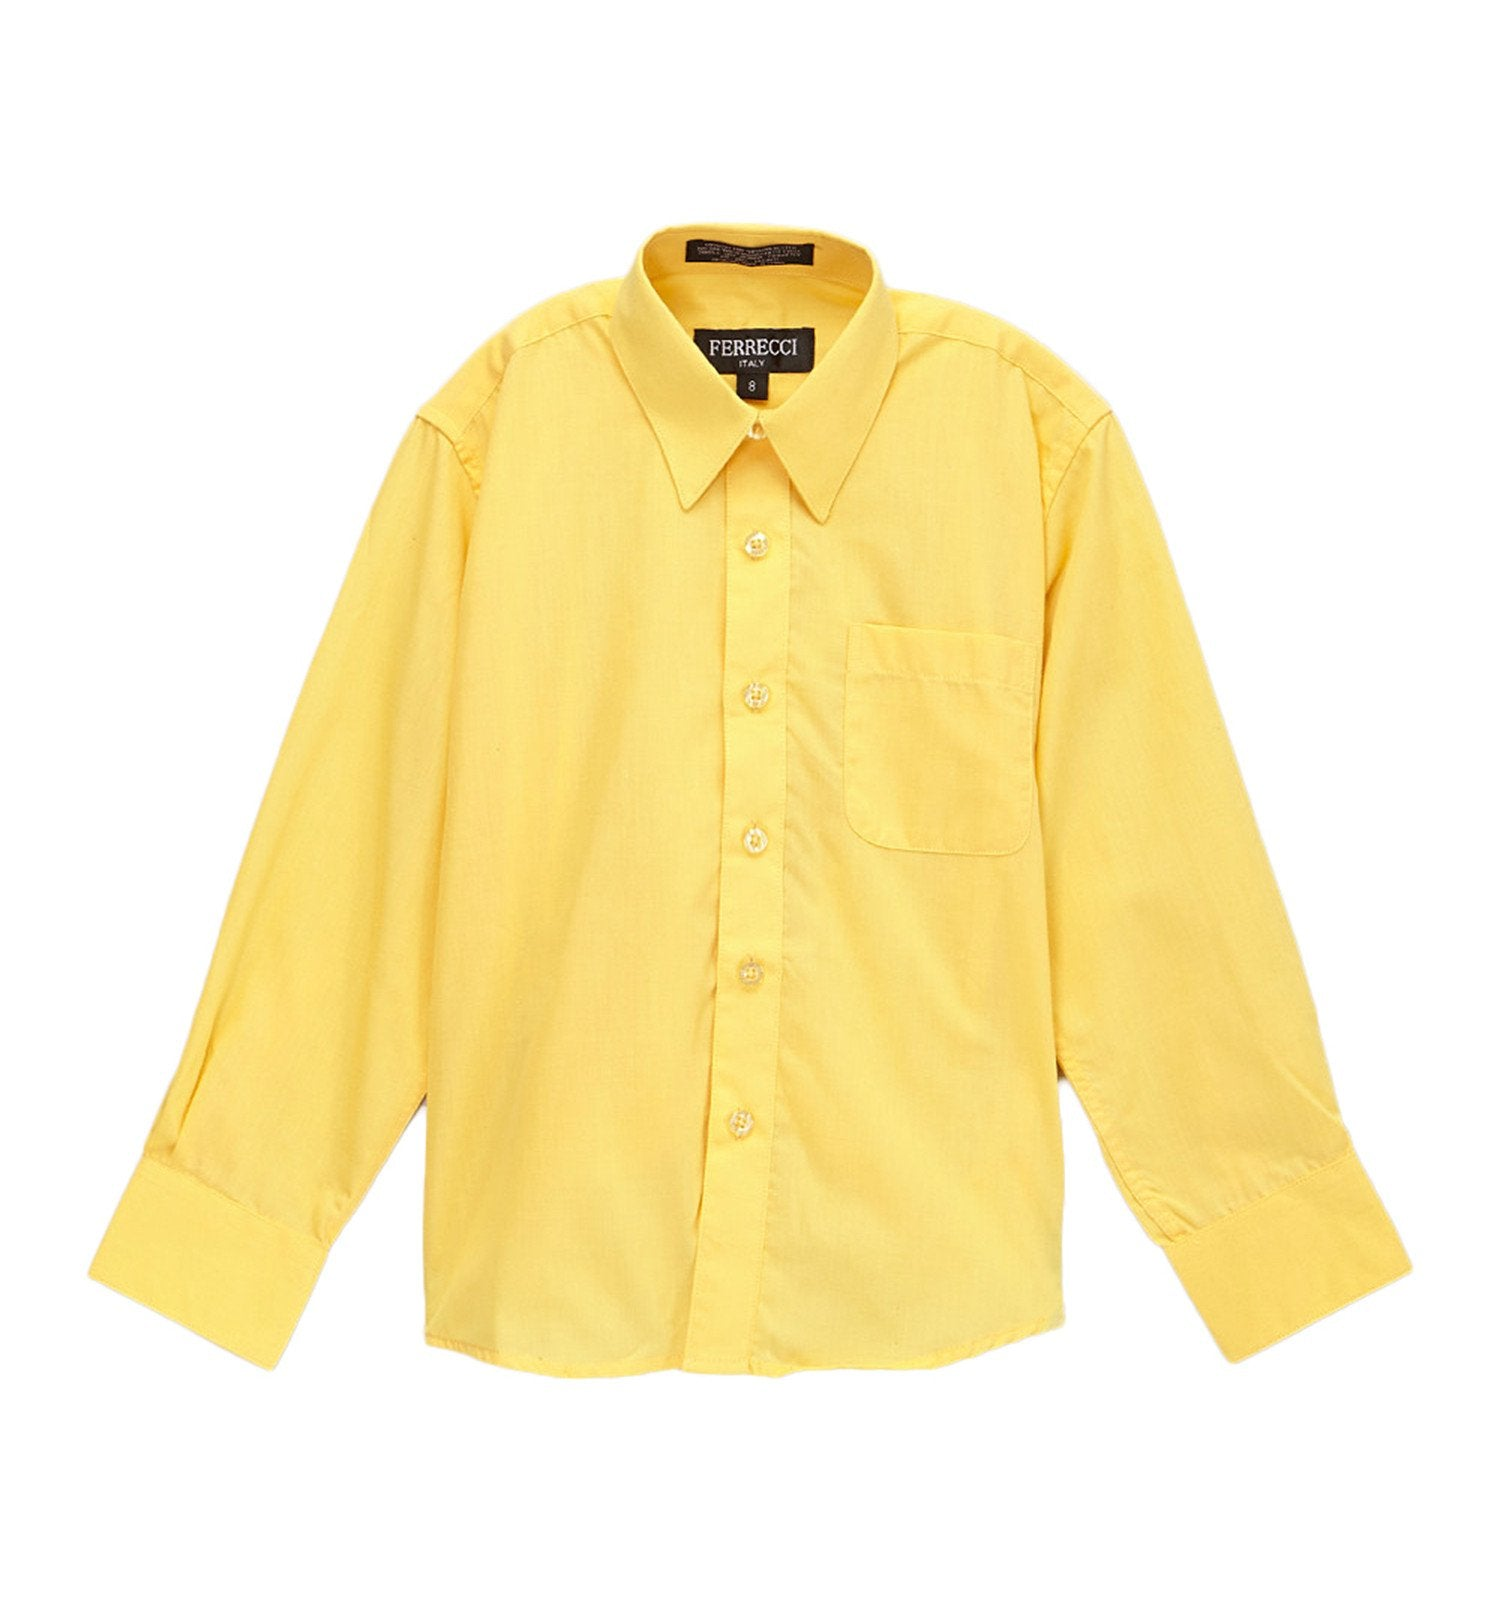 Premium Solid Cotton Blend Yellow Dress Shirt - Giorgio's Menswear